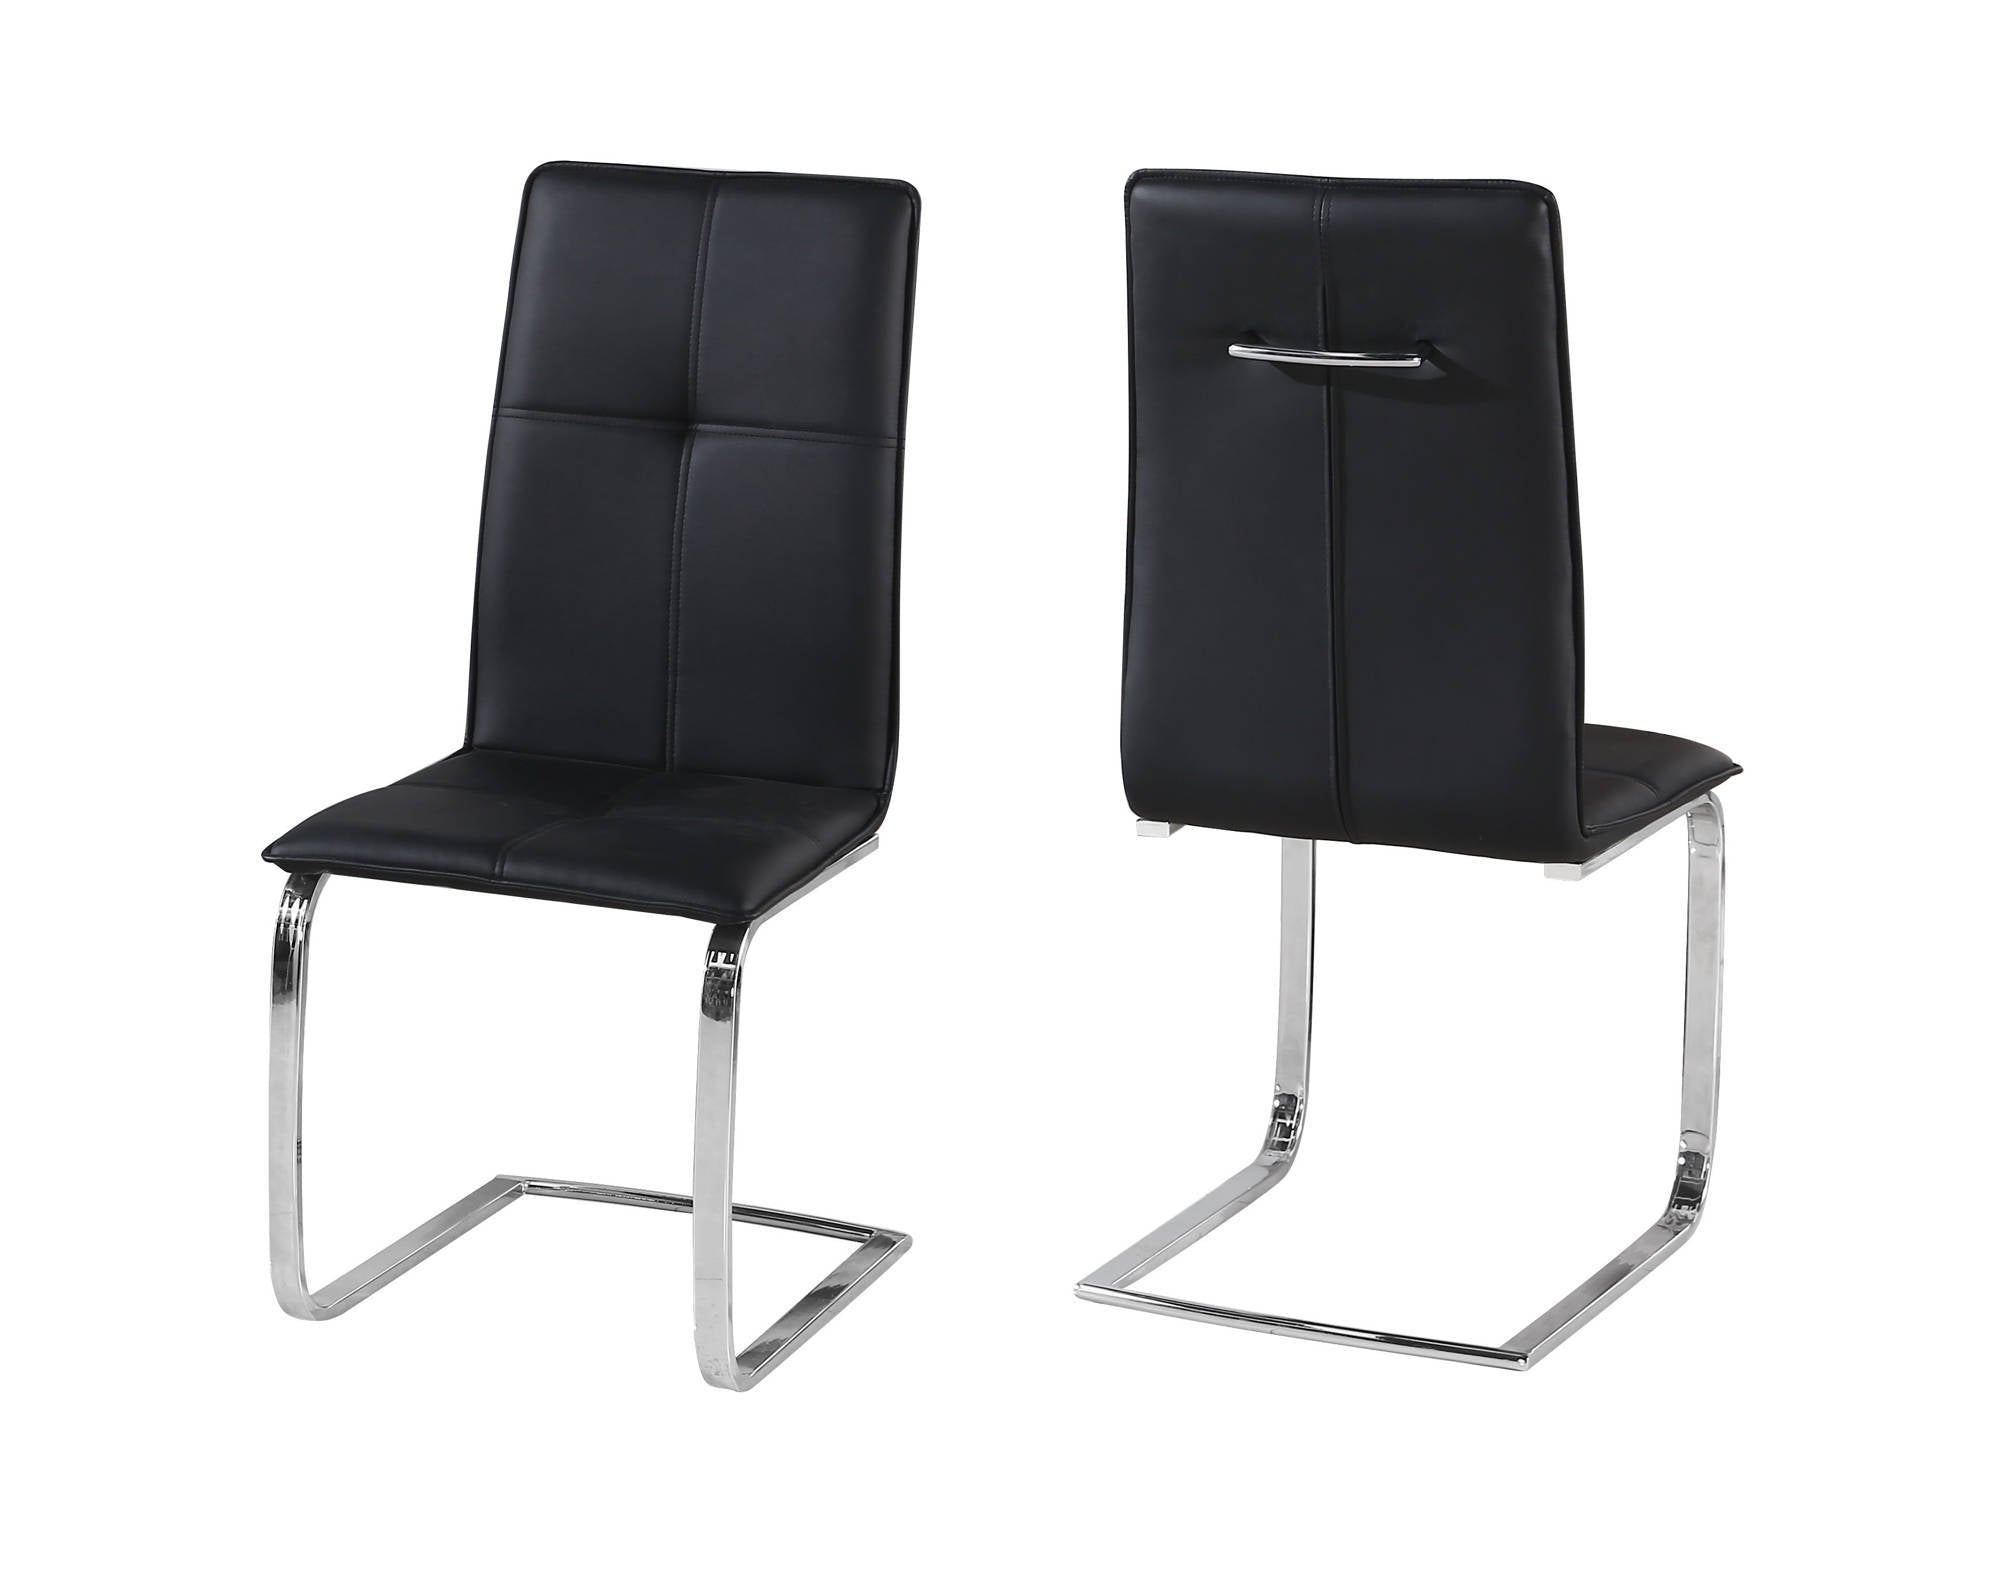 Oeuvre Dining Chairs in Black - Ezzo